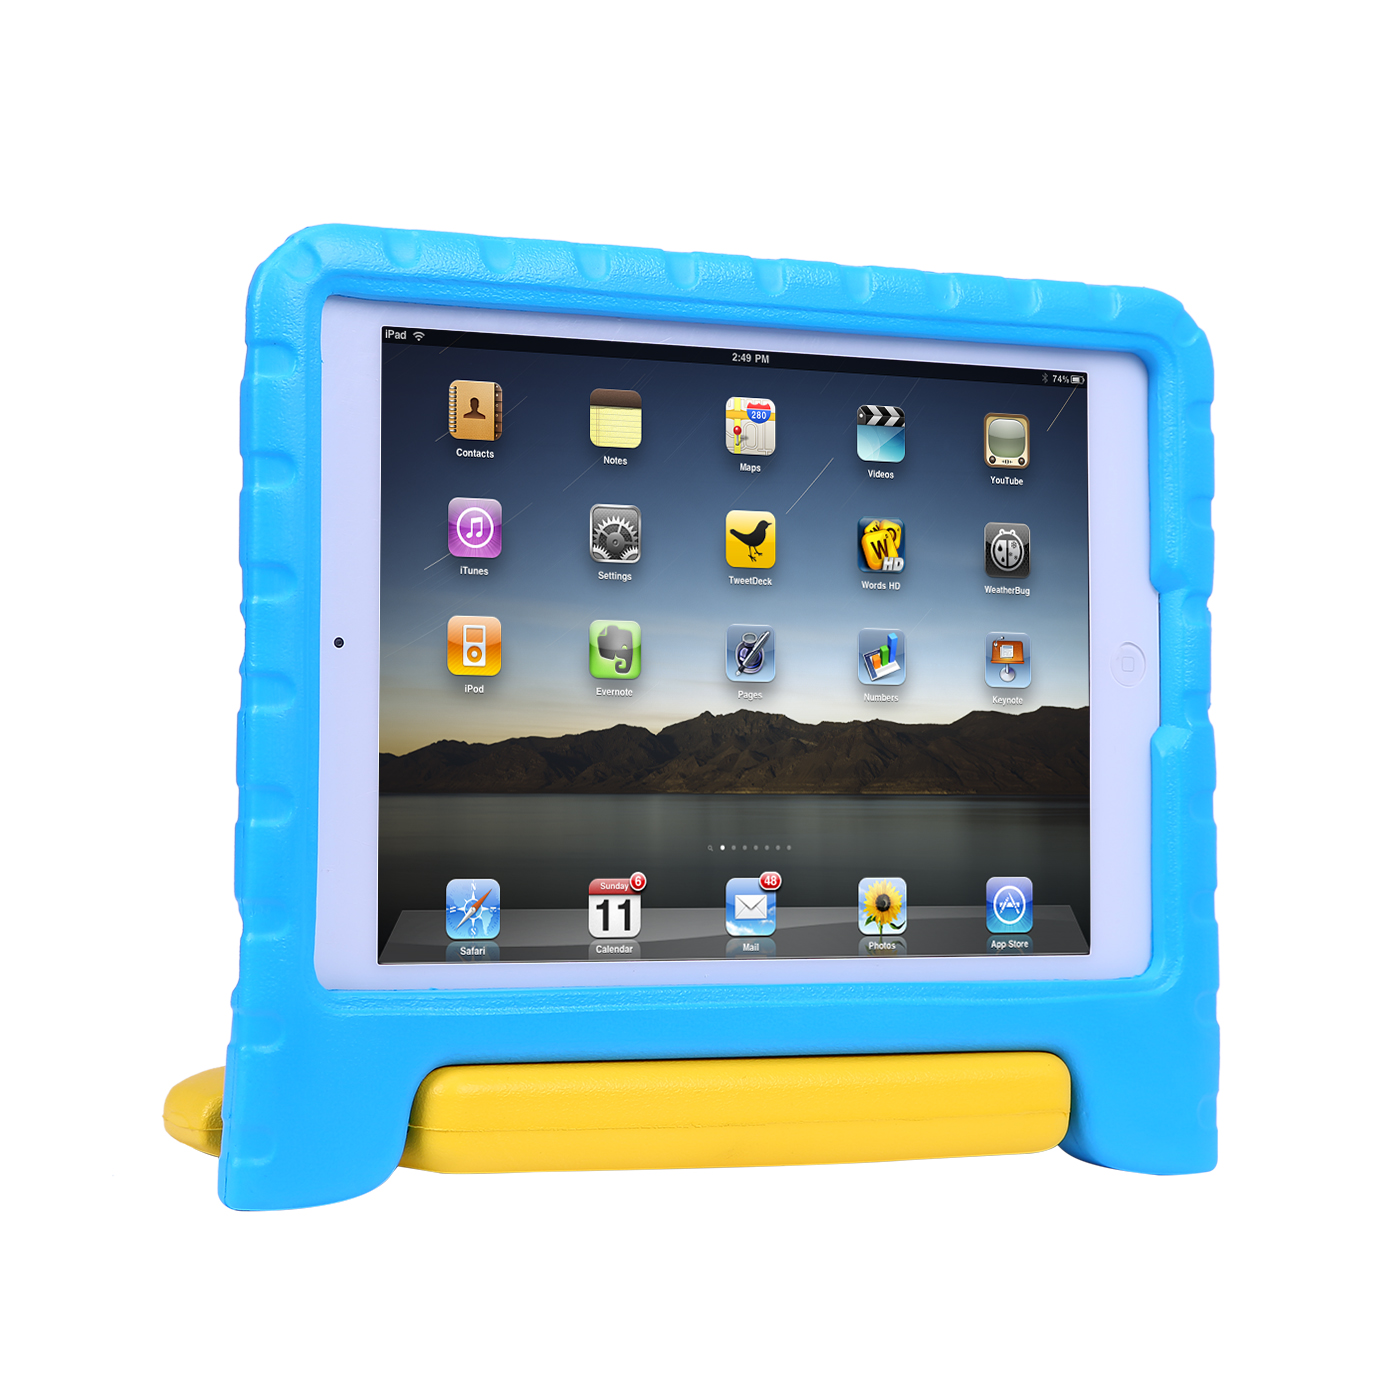 HDE iPad Air 2 Case for Kids with Handle Protective Shock Proof Bumper Cover Stand for Apple iPad Air 2 (Blue Yellow)